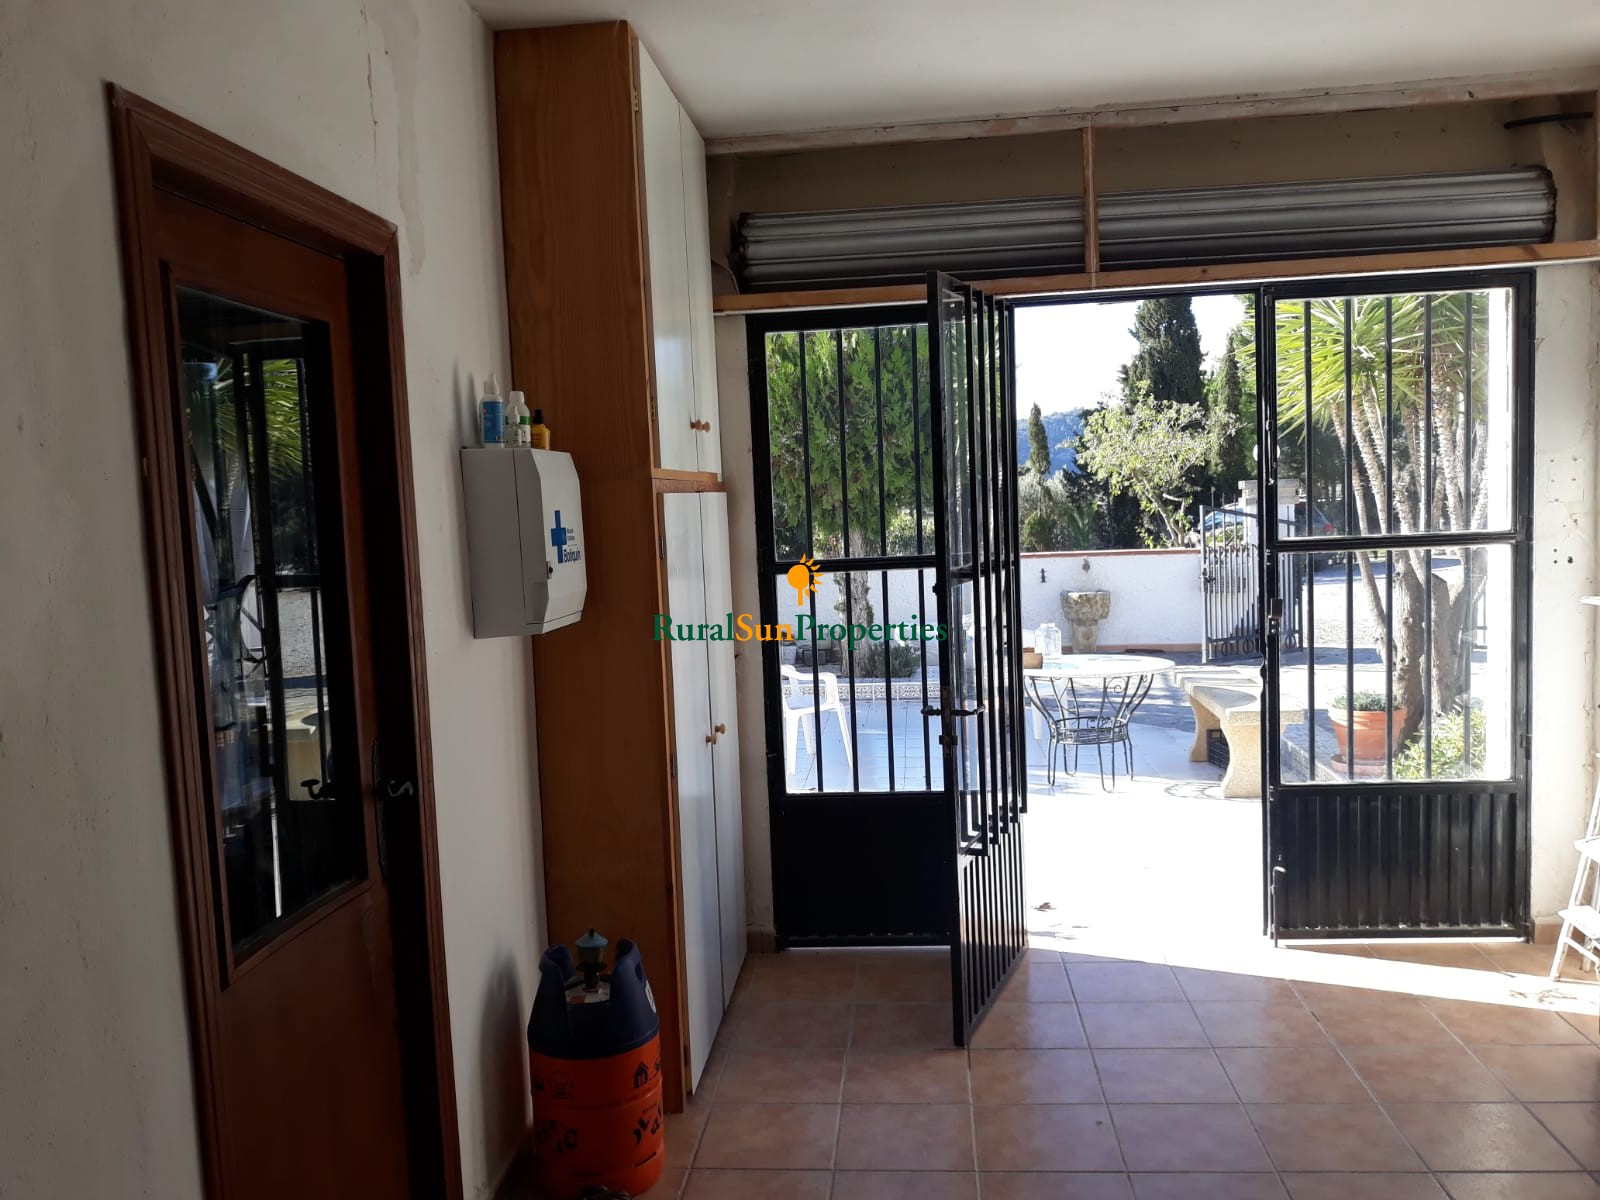 Very spacious country house in Bullas 35 minutes from Murcia city